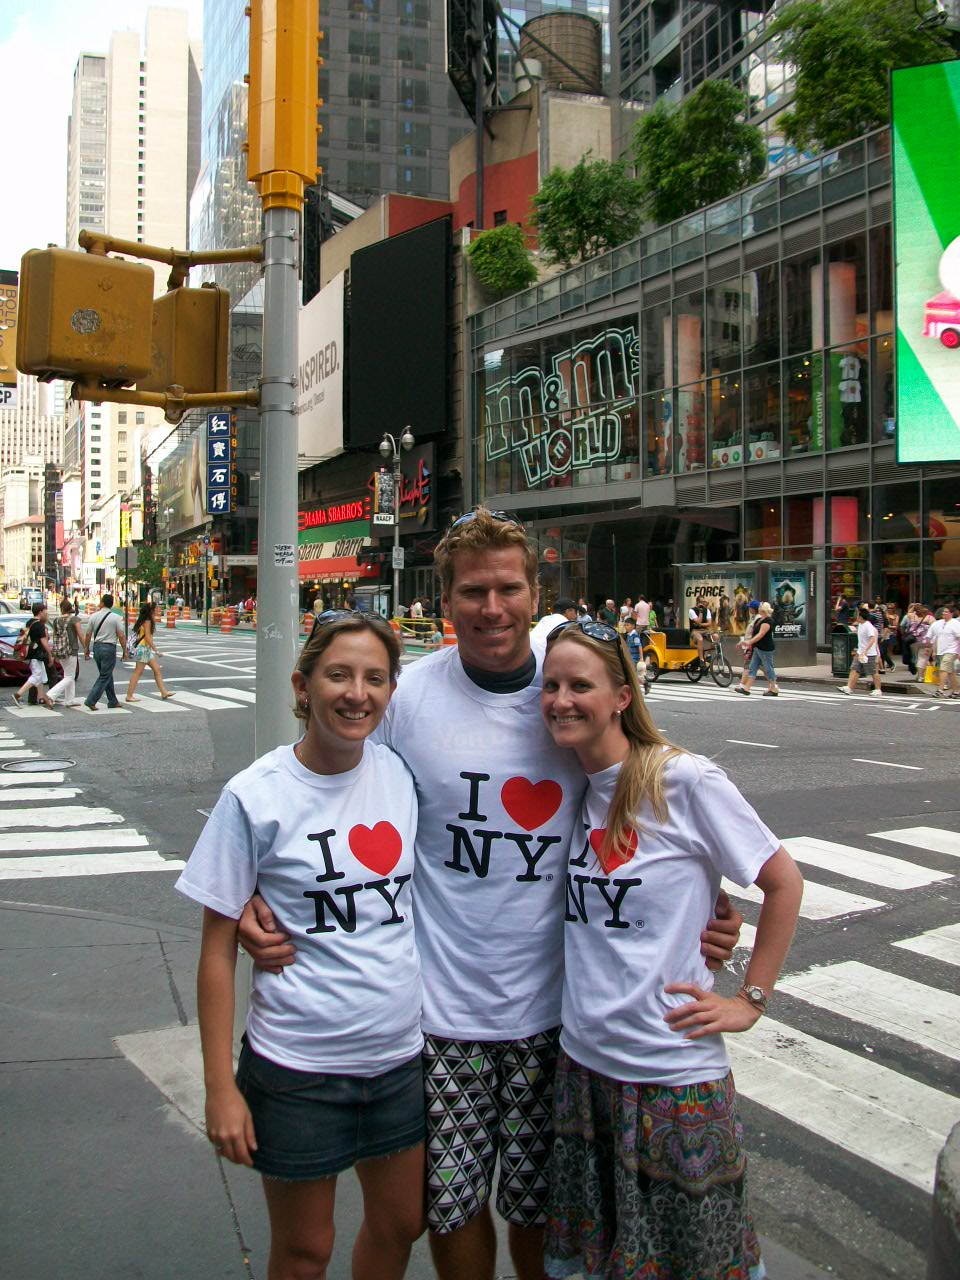 I hear you Lance - but I still heart NY ;)